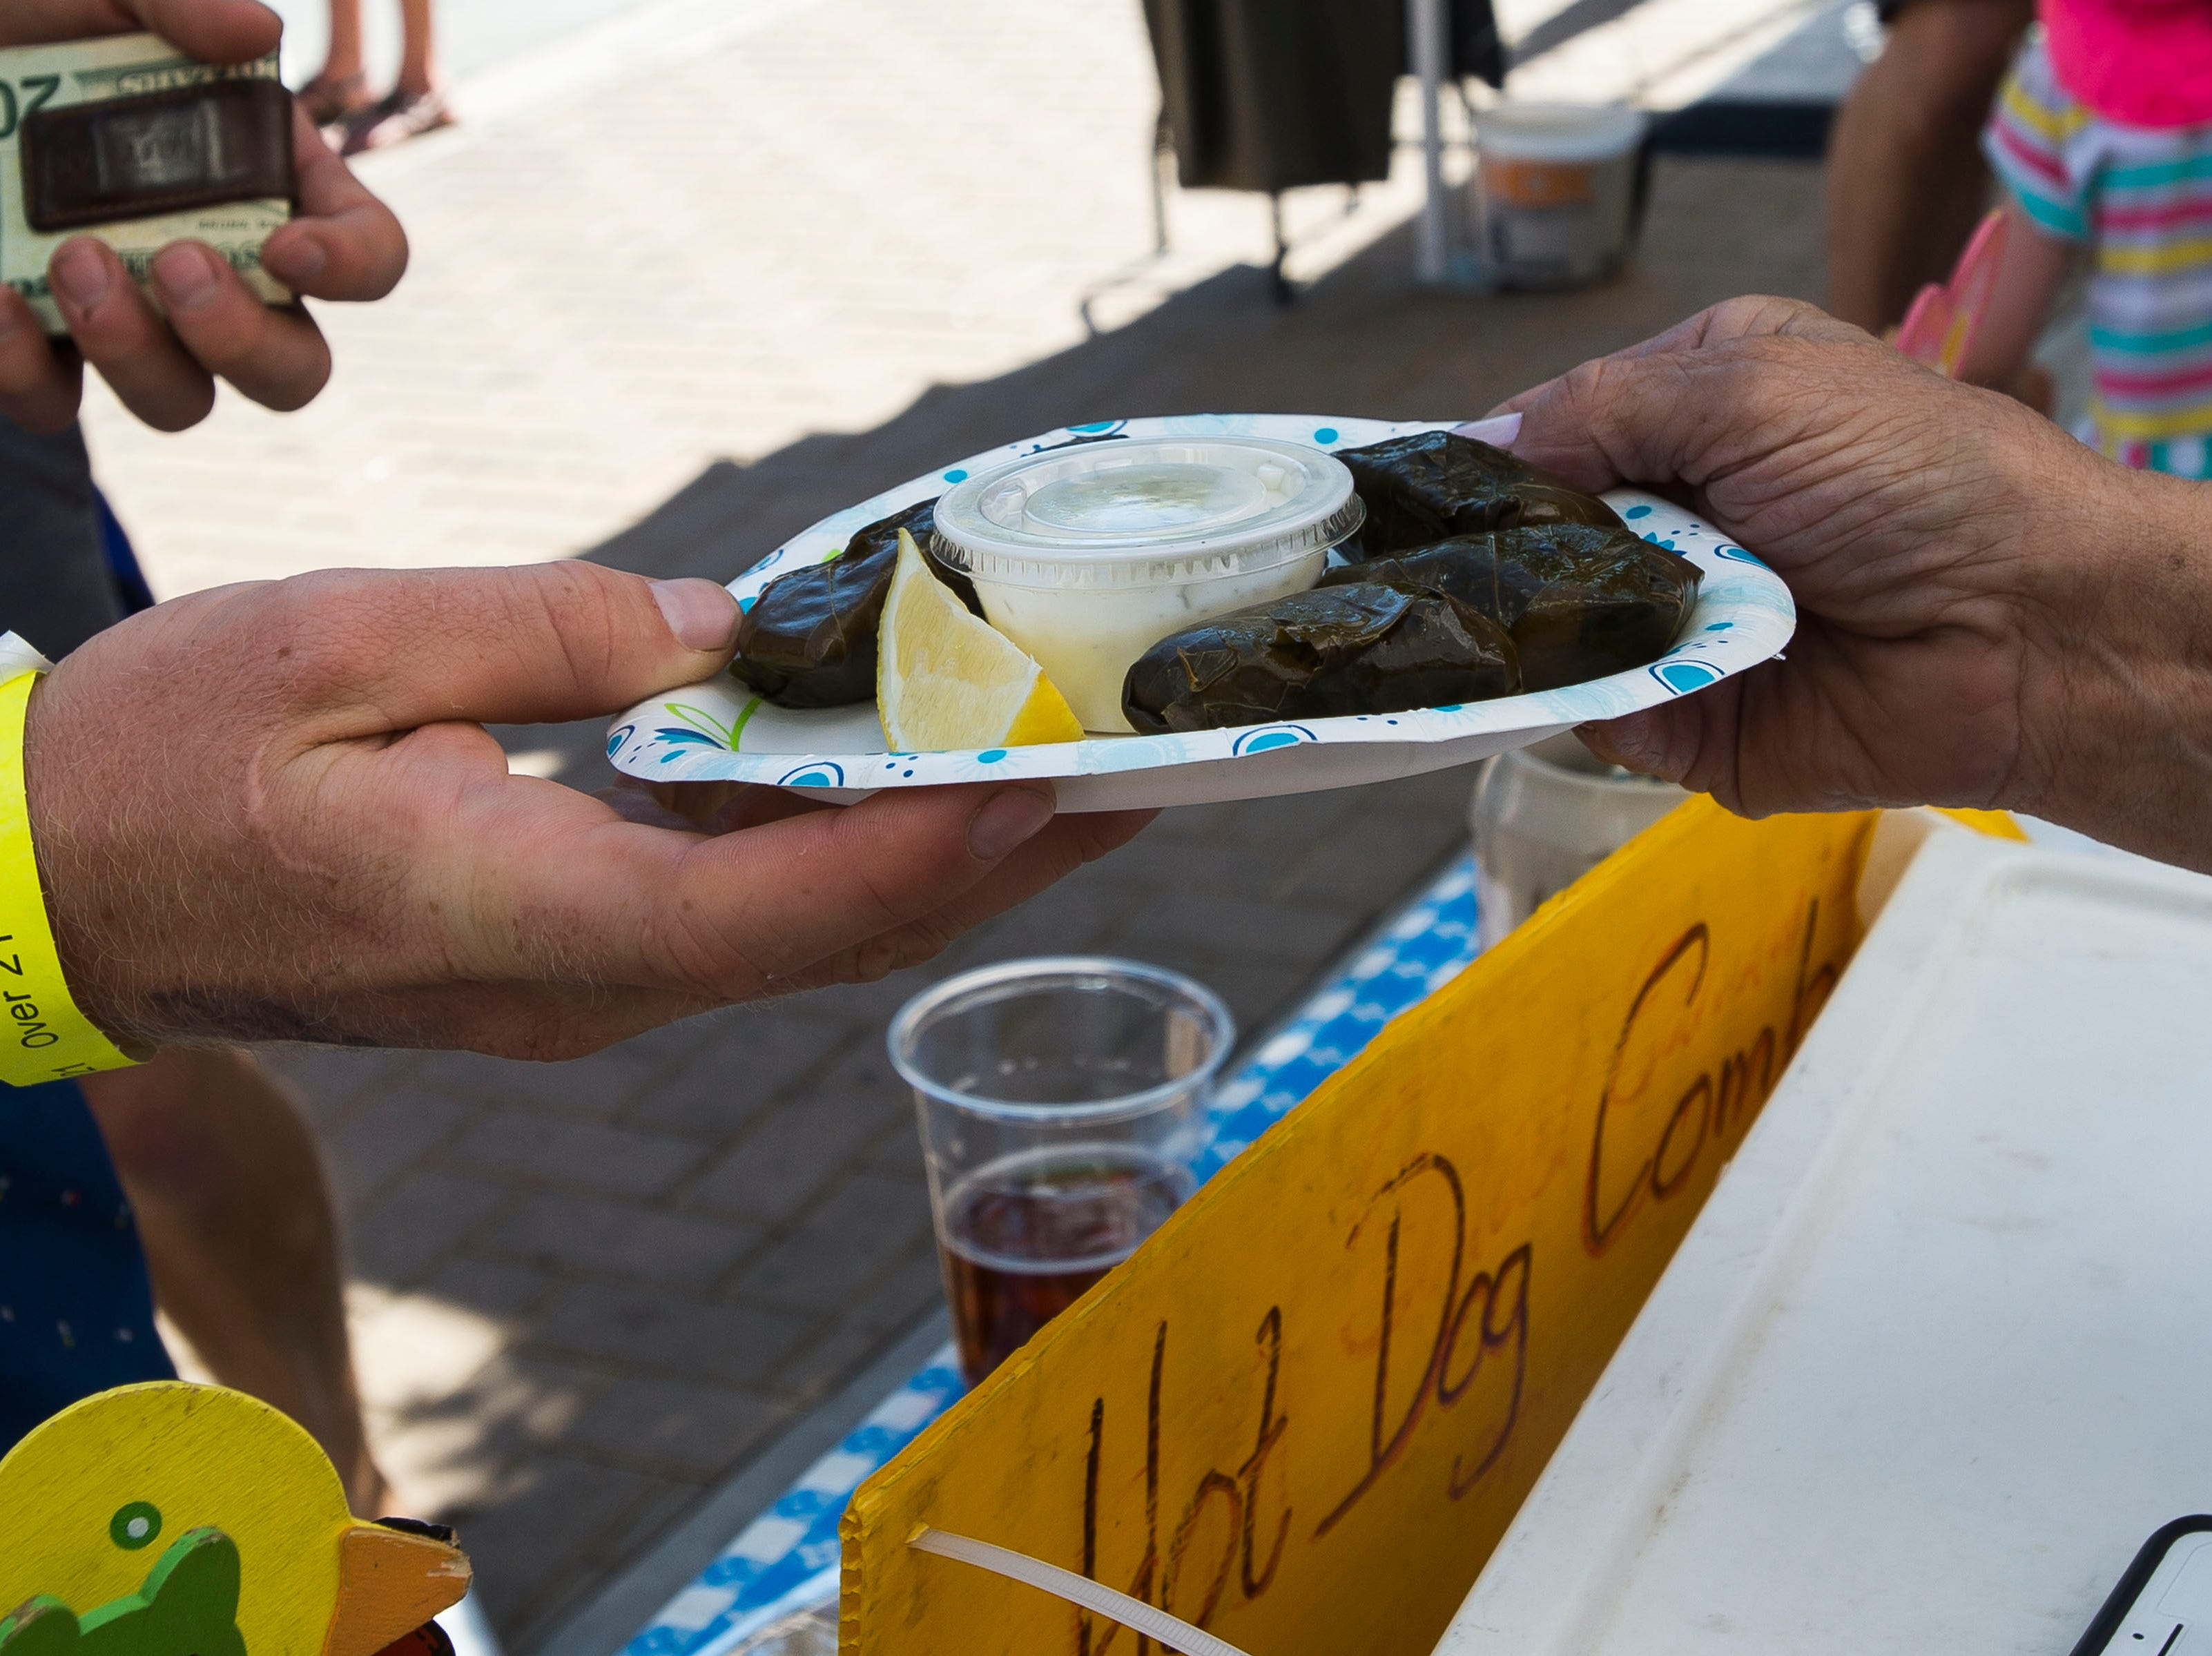 Robbie Boettger gets a plate of stuffed olive leaves from Gunter's Bavarian Grill during Fortoberfest 2018 on Saturday, Sept. 15, 2018, at Old Town Square in Fort Collins, Colo.